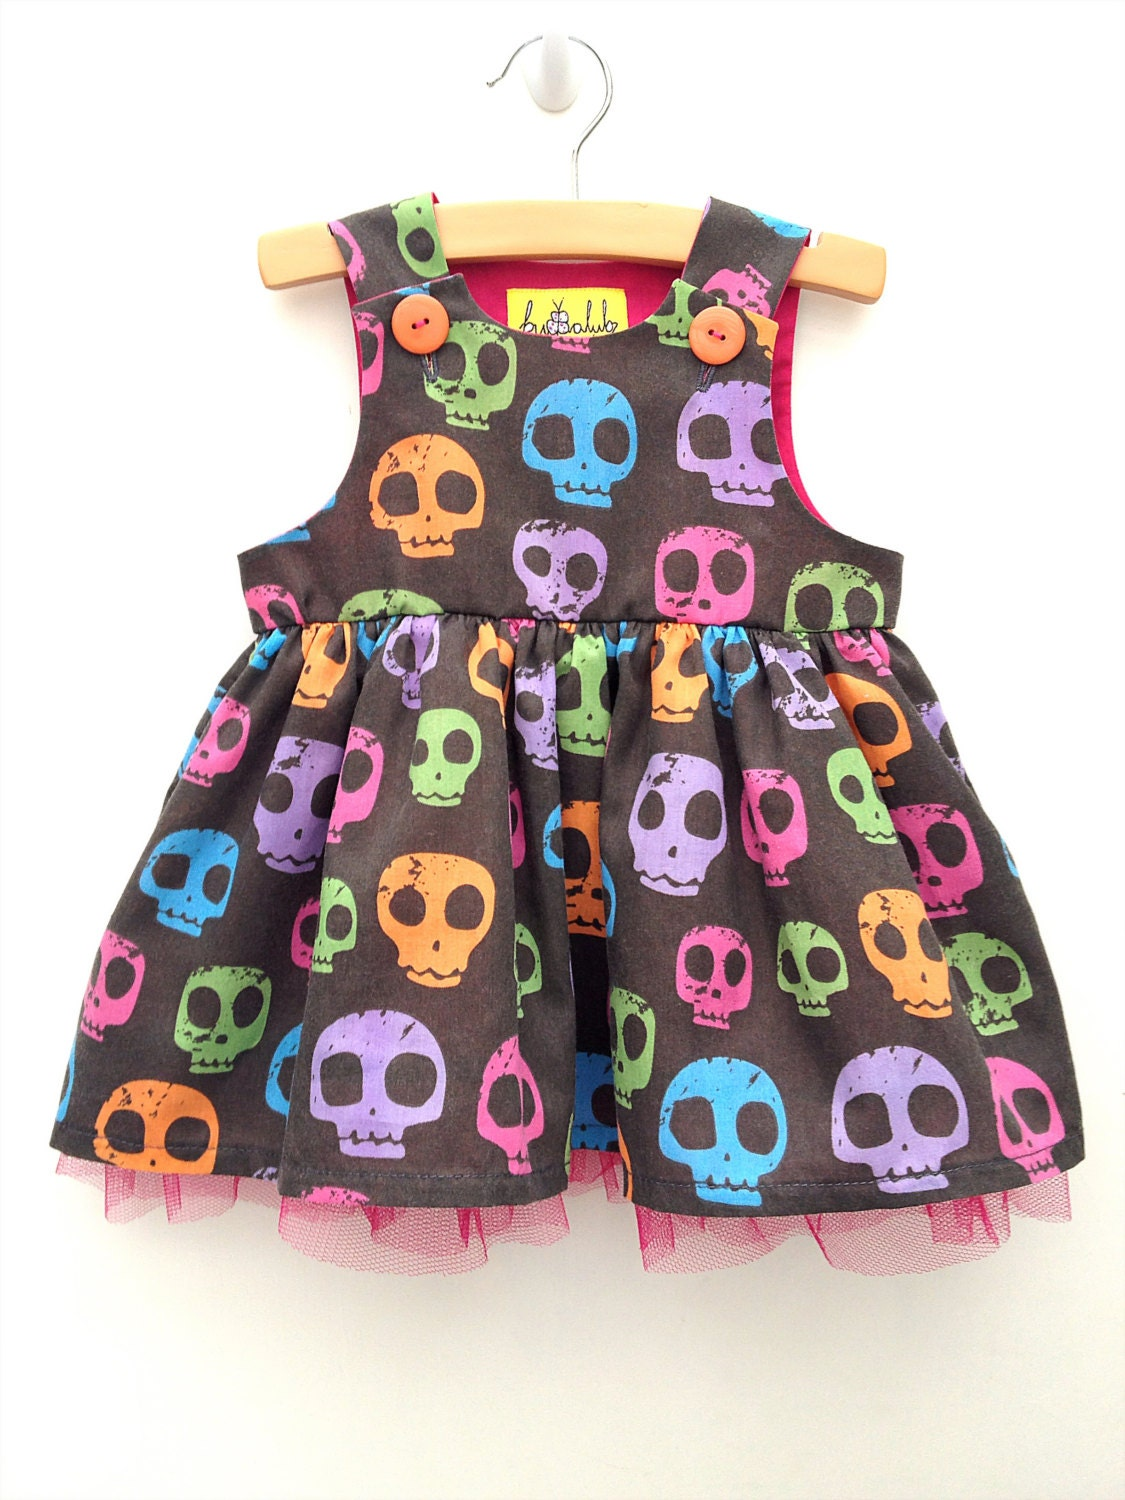 Gothic Baby Clothes Imgkid Has